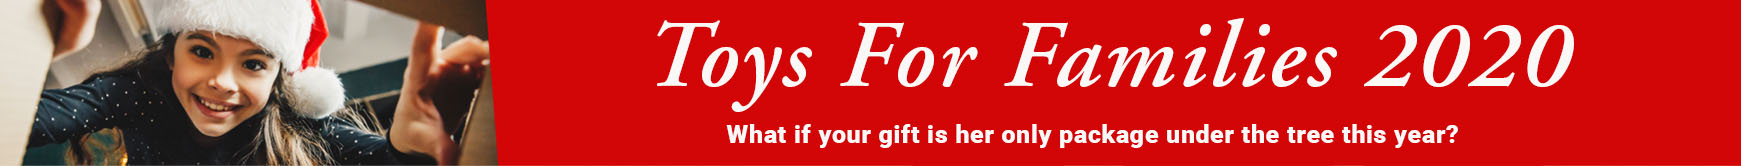 Toys-For-Families